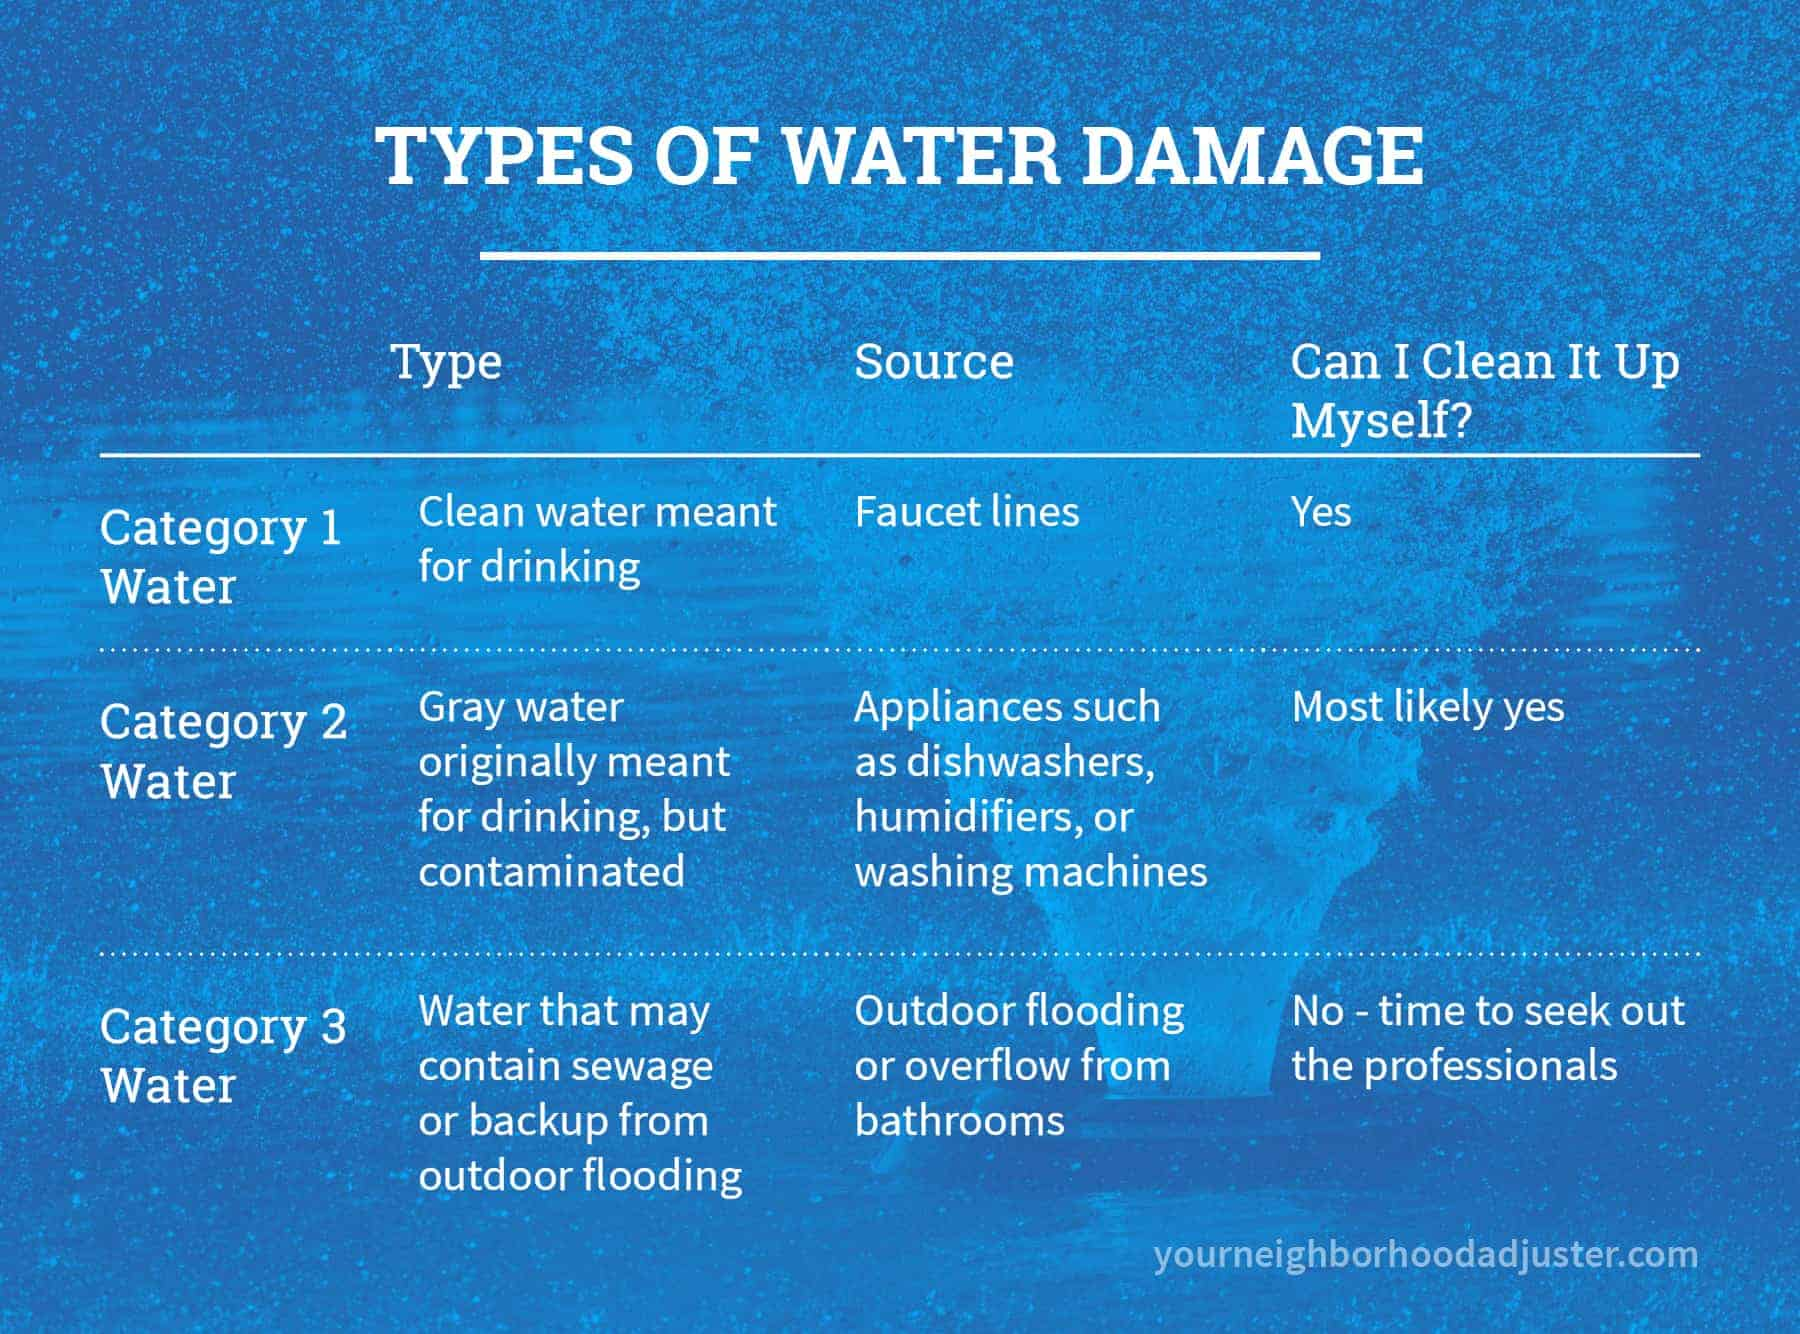 types of water damage by category